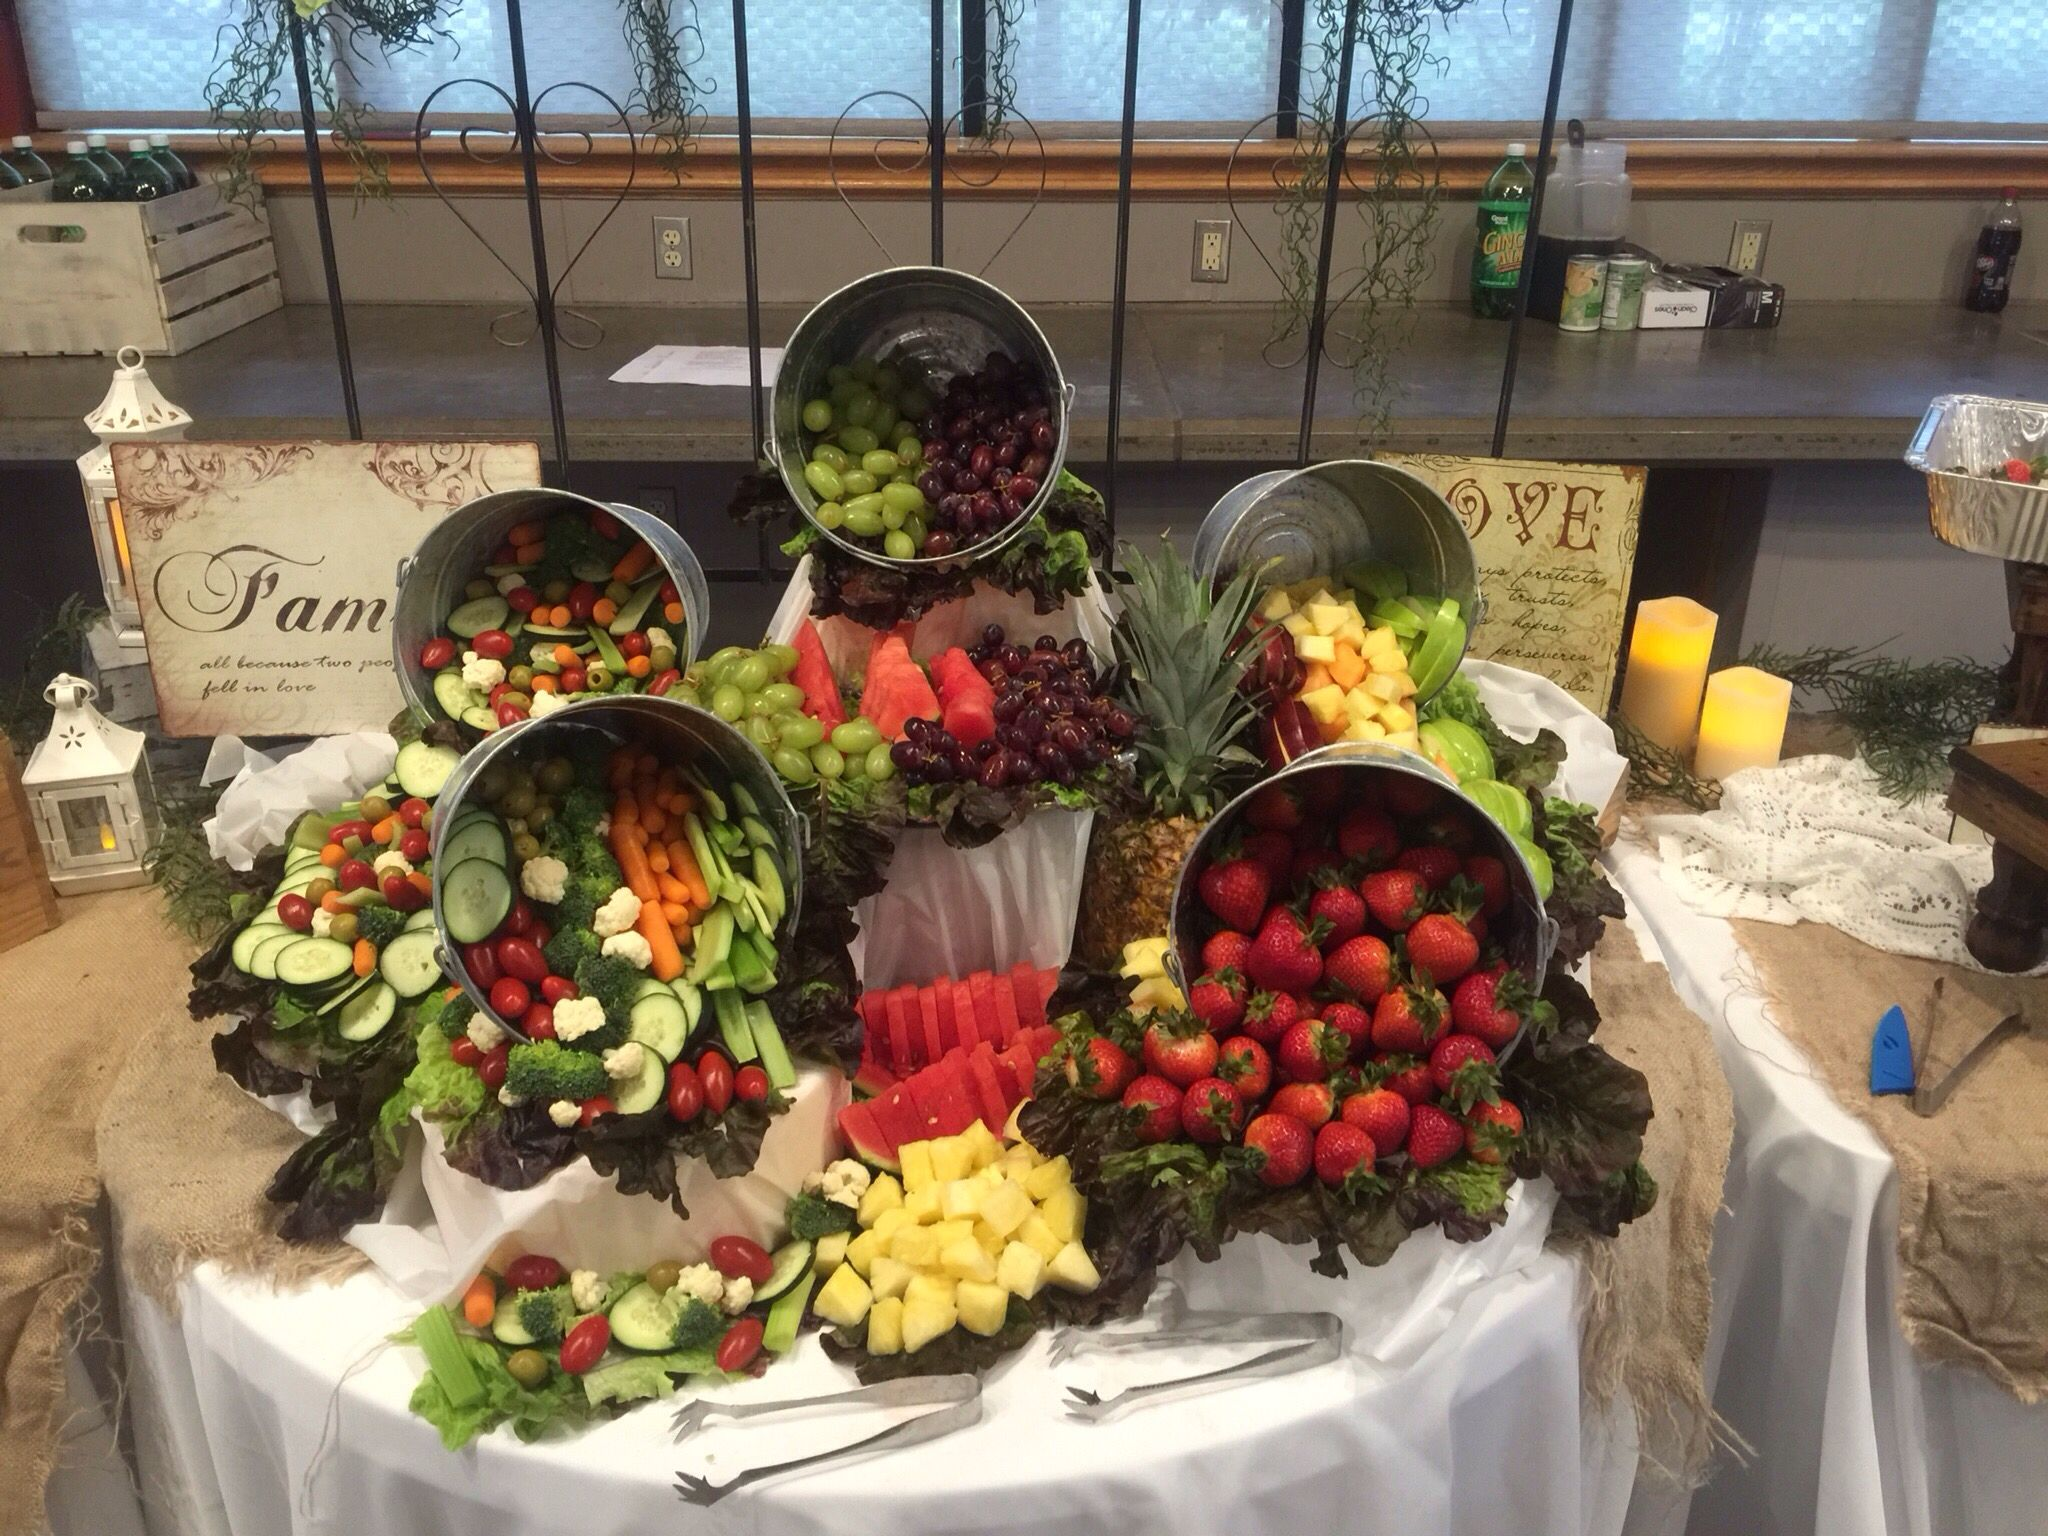 Waterfall Fruit And Veggie Displays: Rustic Fruit And Vegetable Display. …